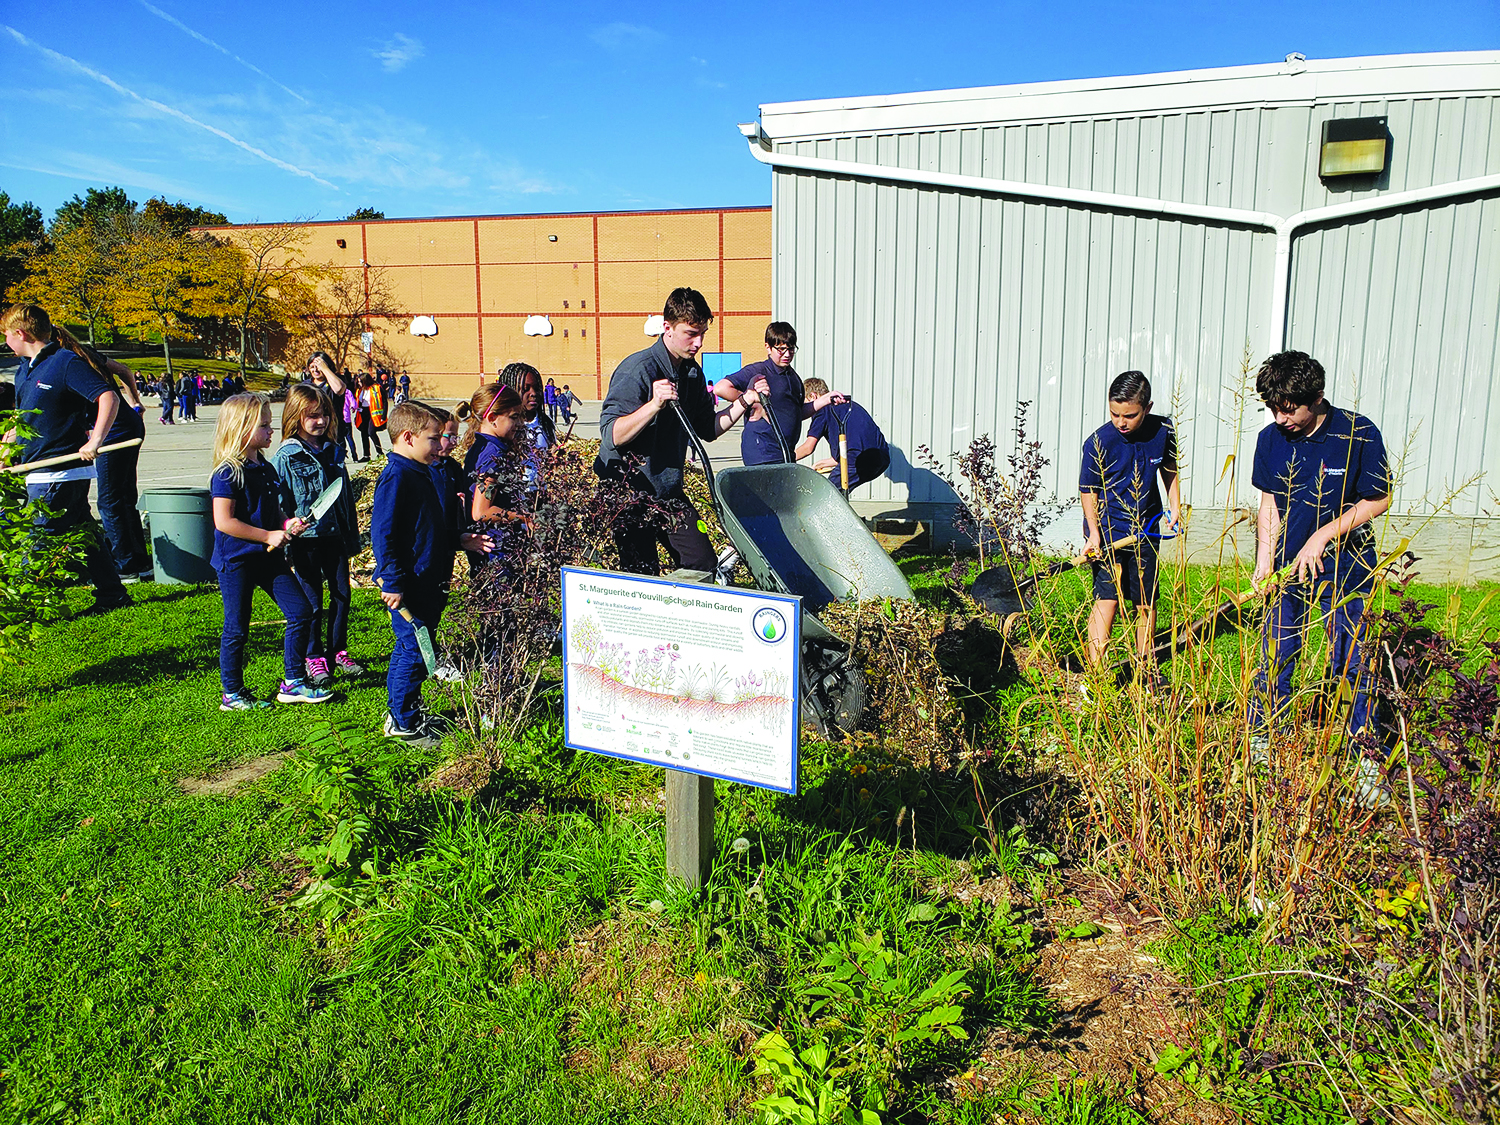 All-school community garden